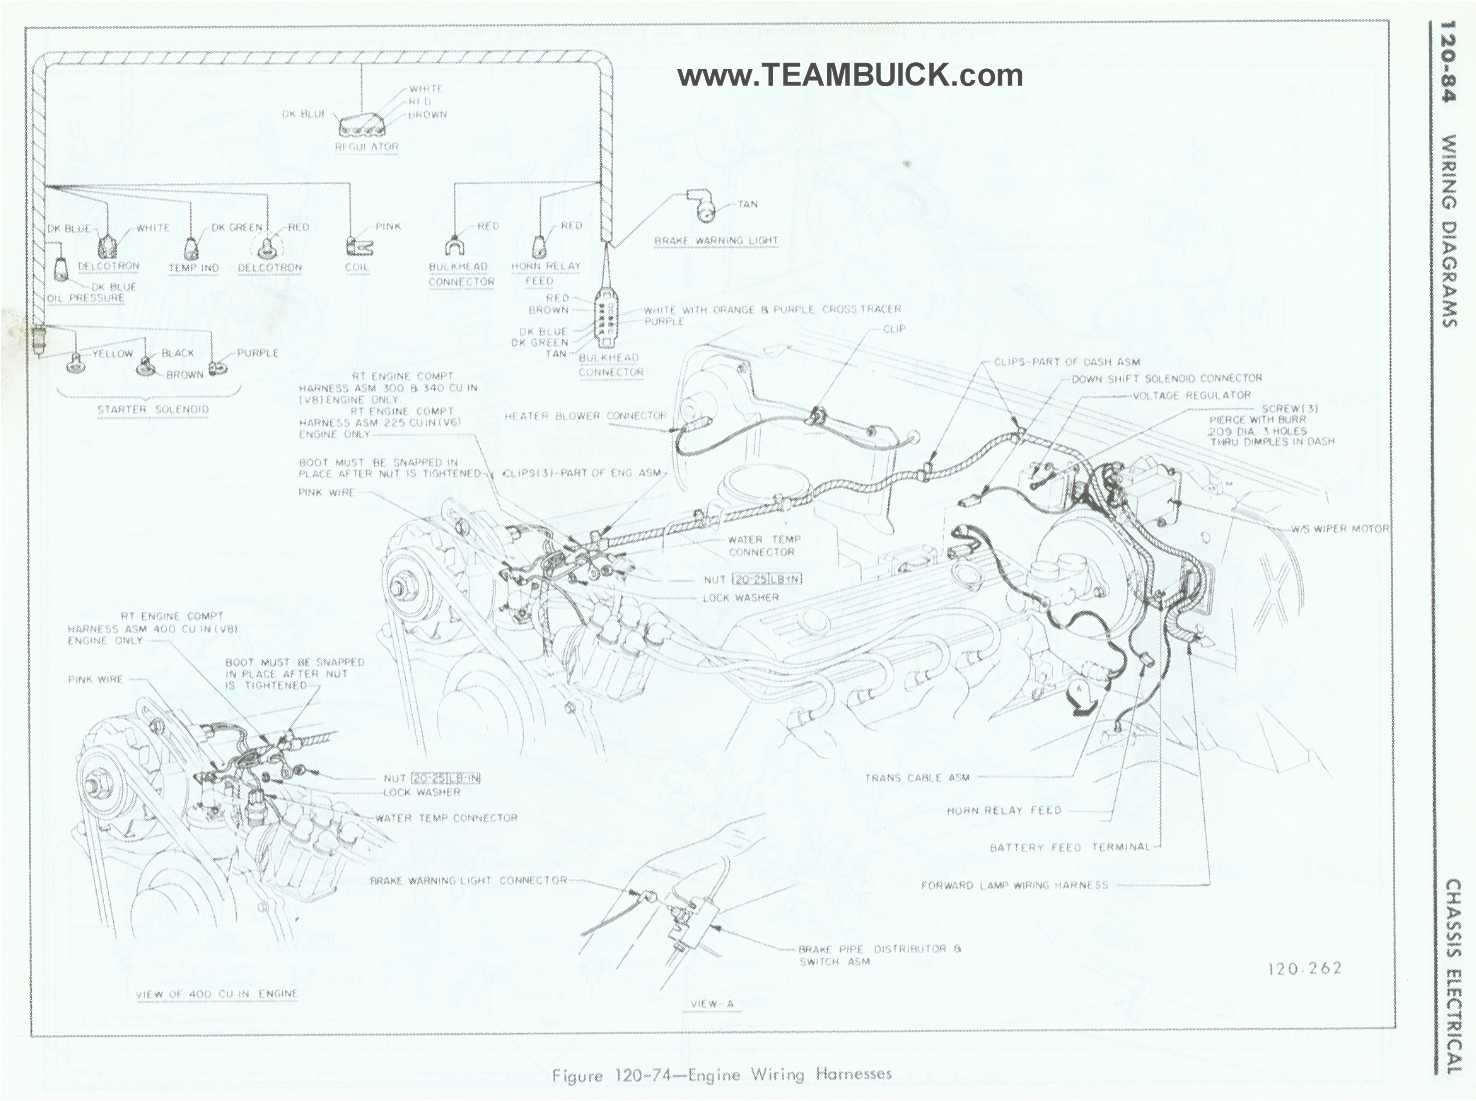 1972 buick 455 wiring diagram product wiring diagrams \u2022 1970 buick gs stage 1 1972 buick 455 wiring diagram images gallery